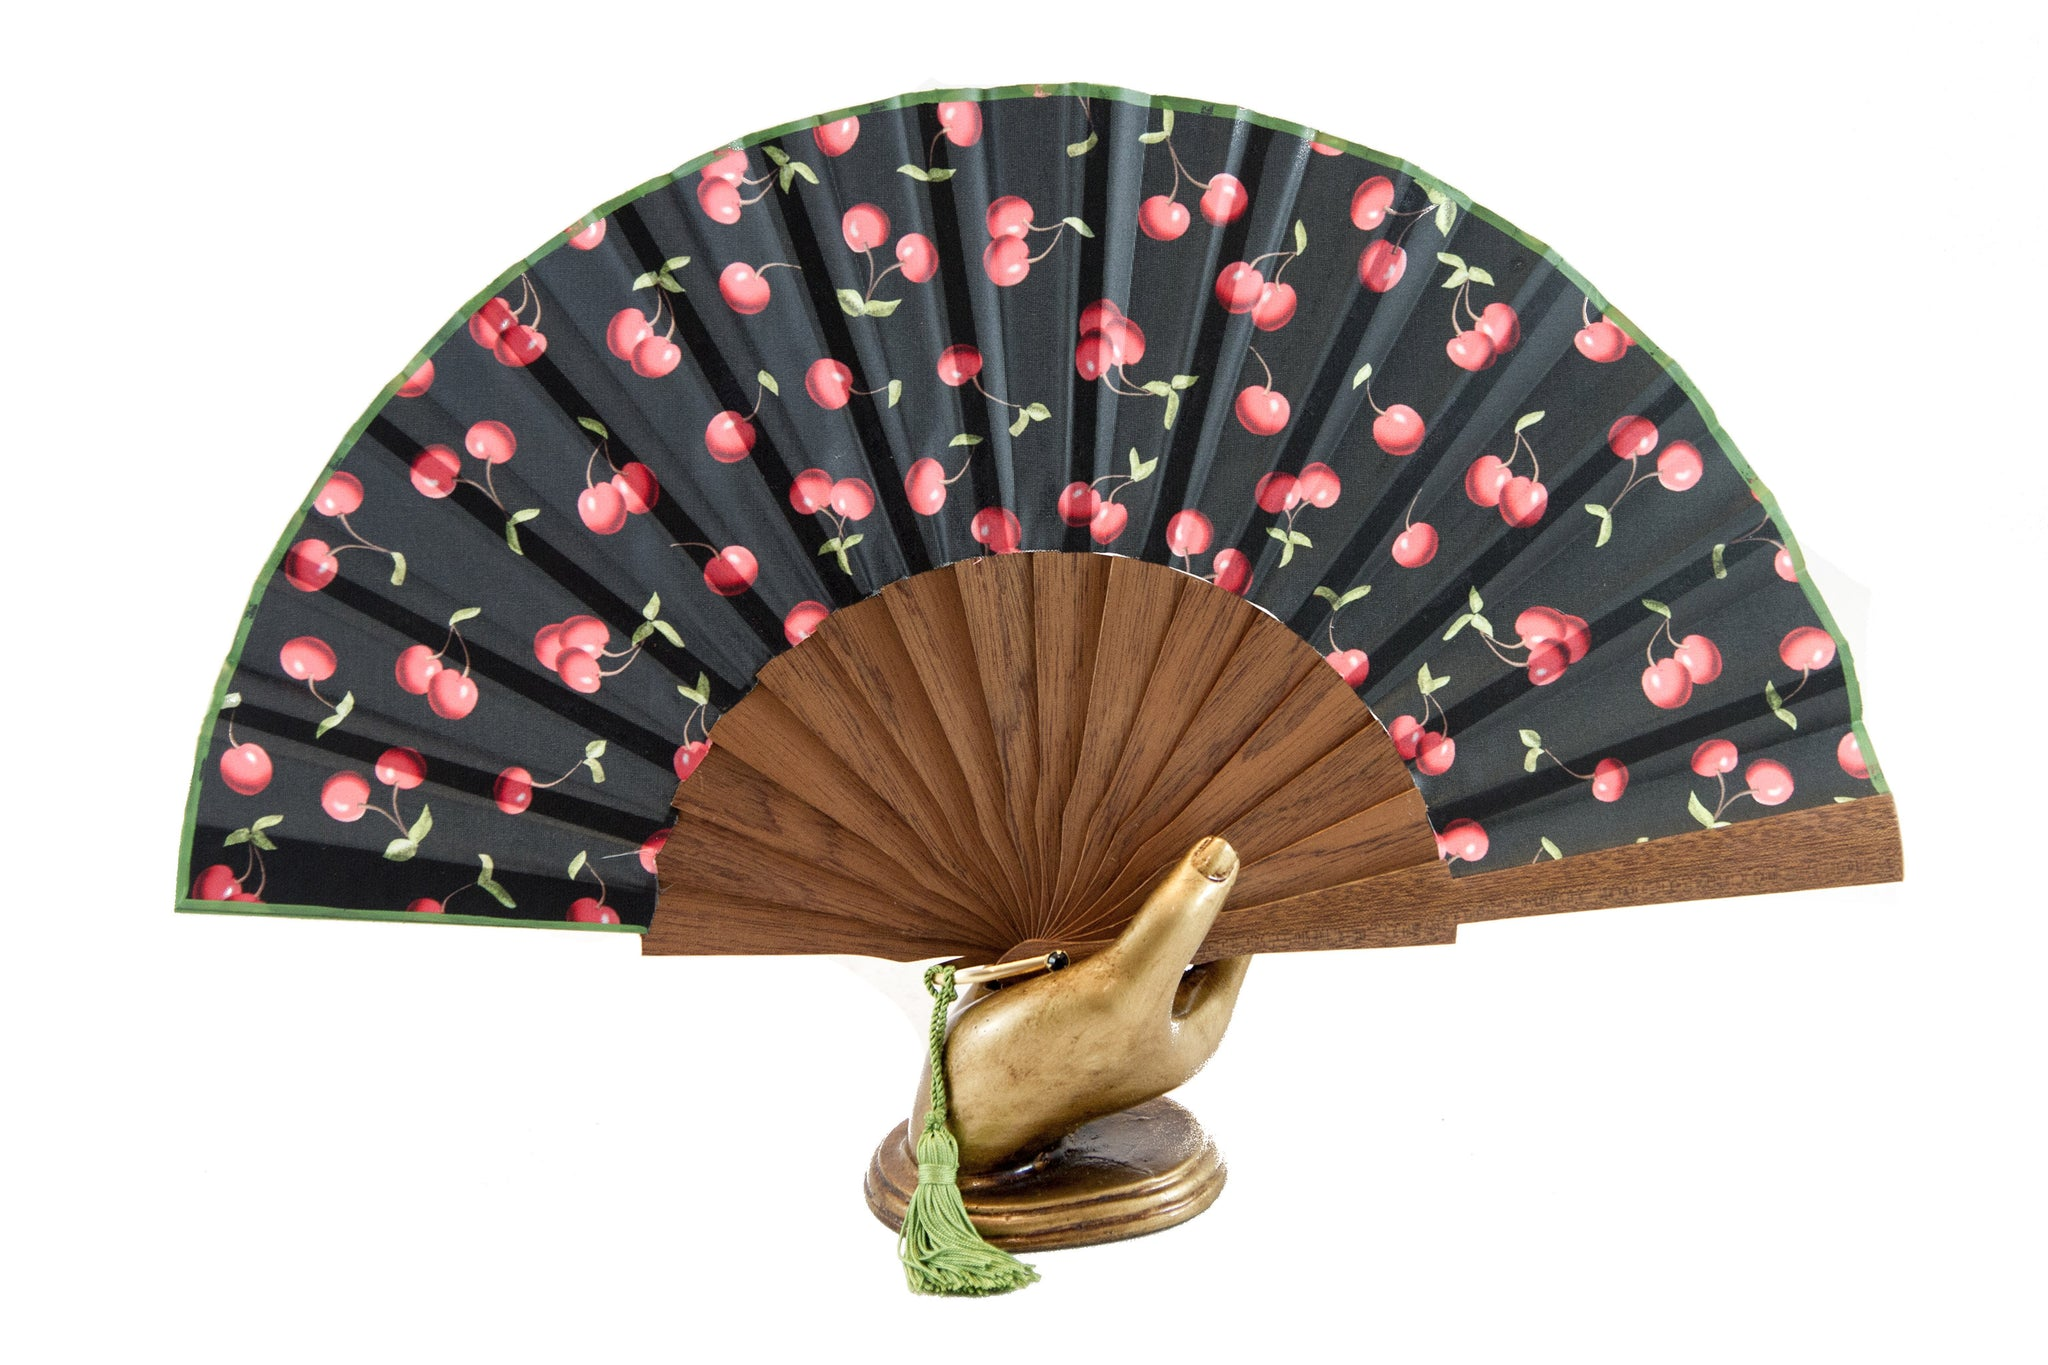 Morello - Striking contemporary cherries design handmade silk fan